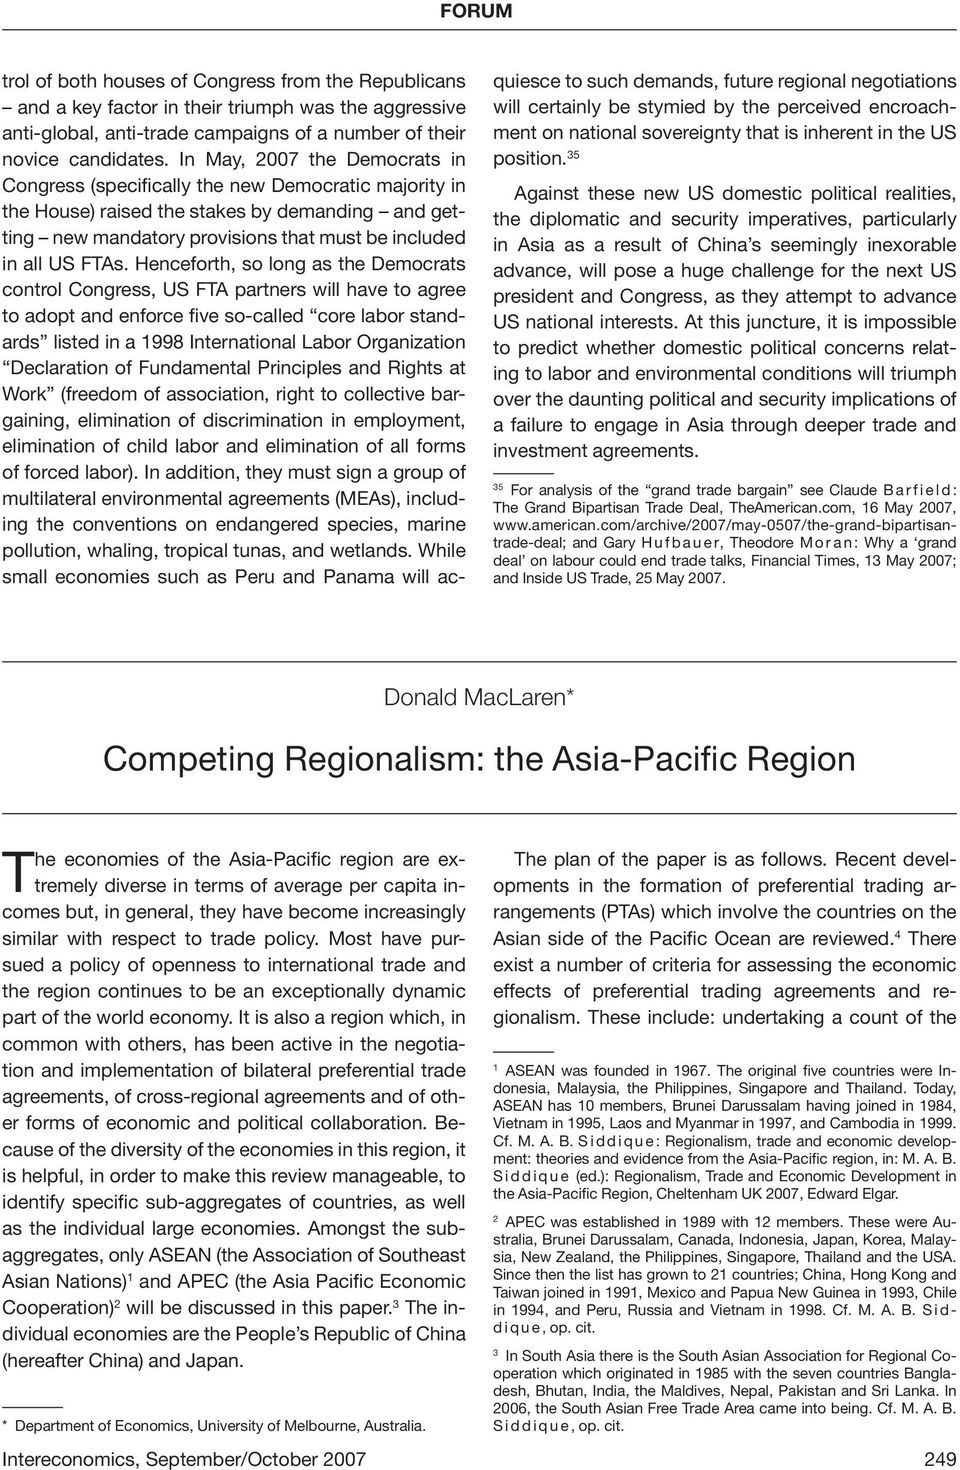 regionalism trade and economic development in the asia pacific region siddique m a b